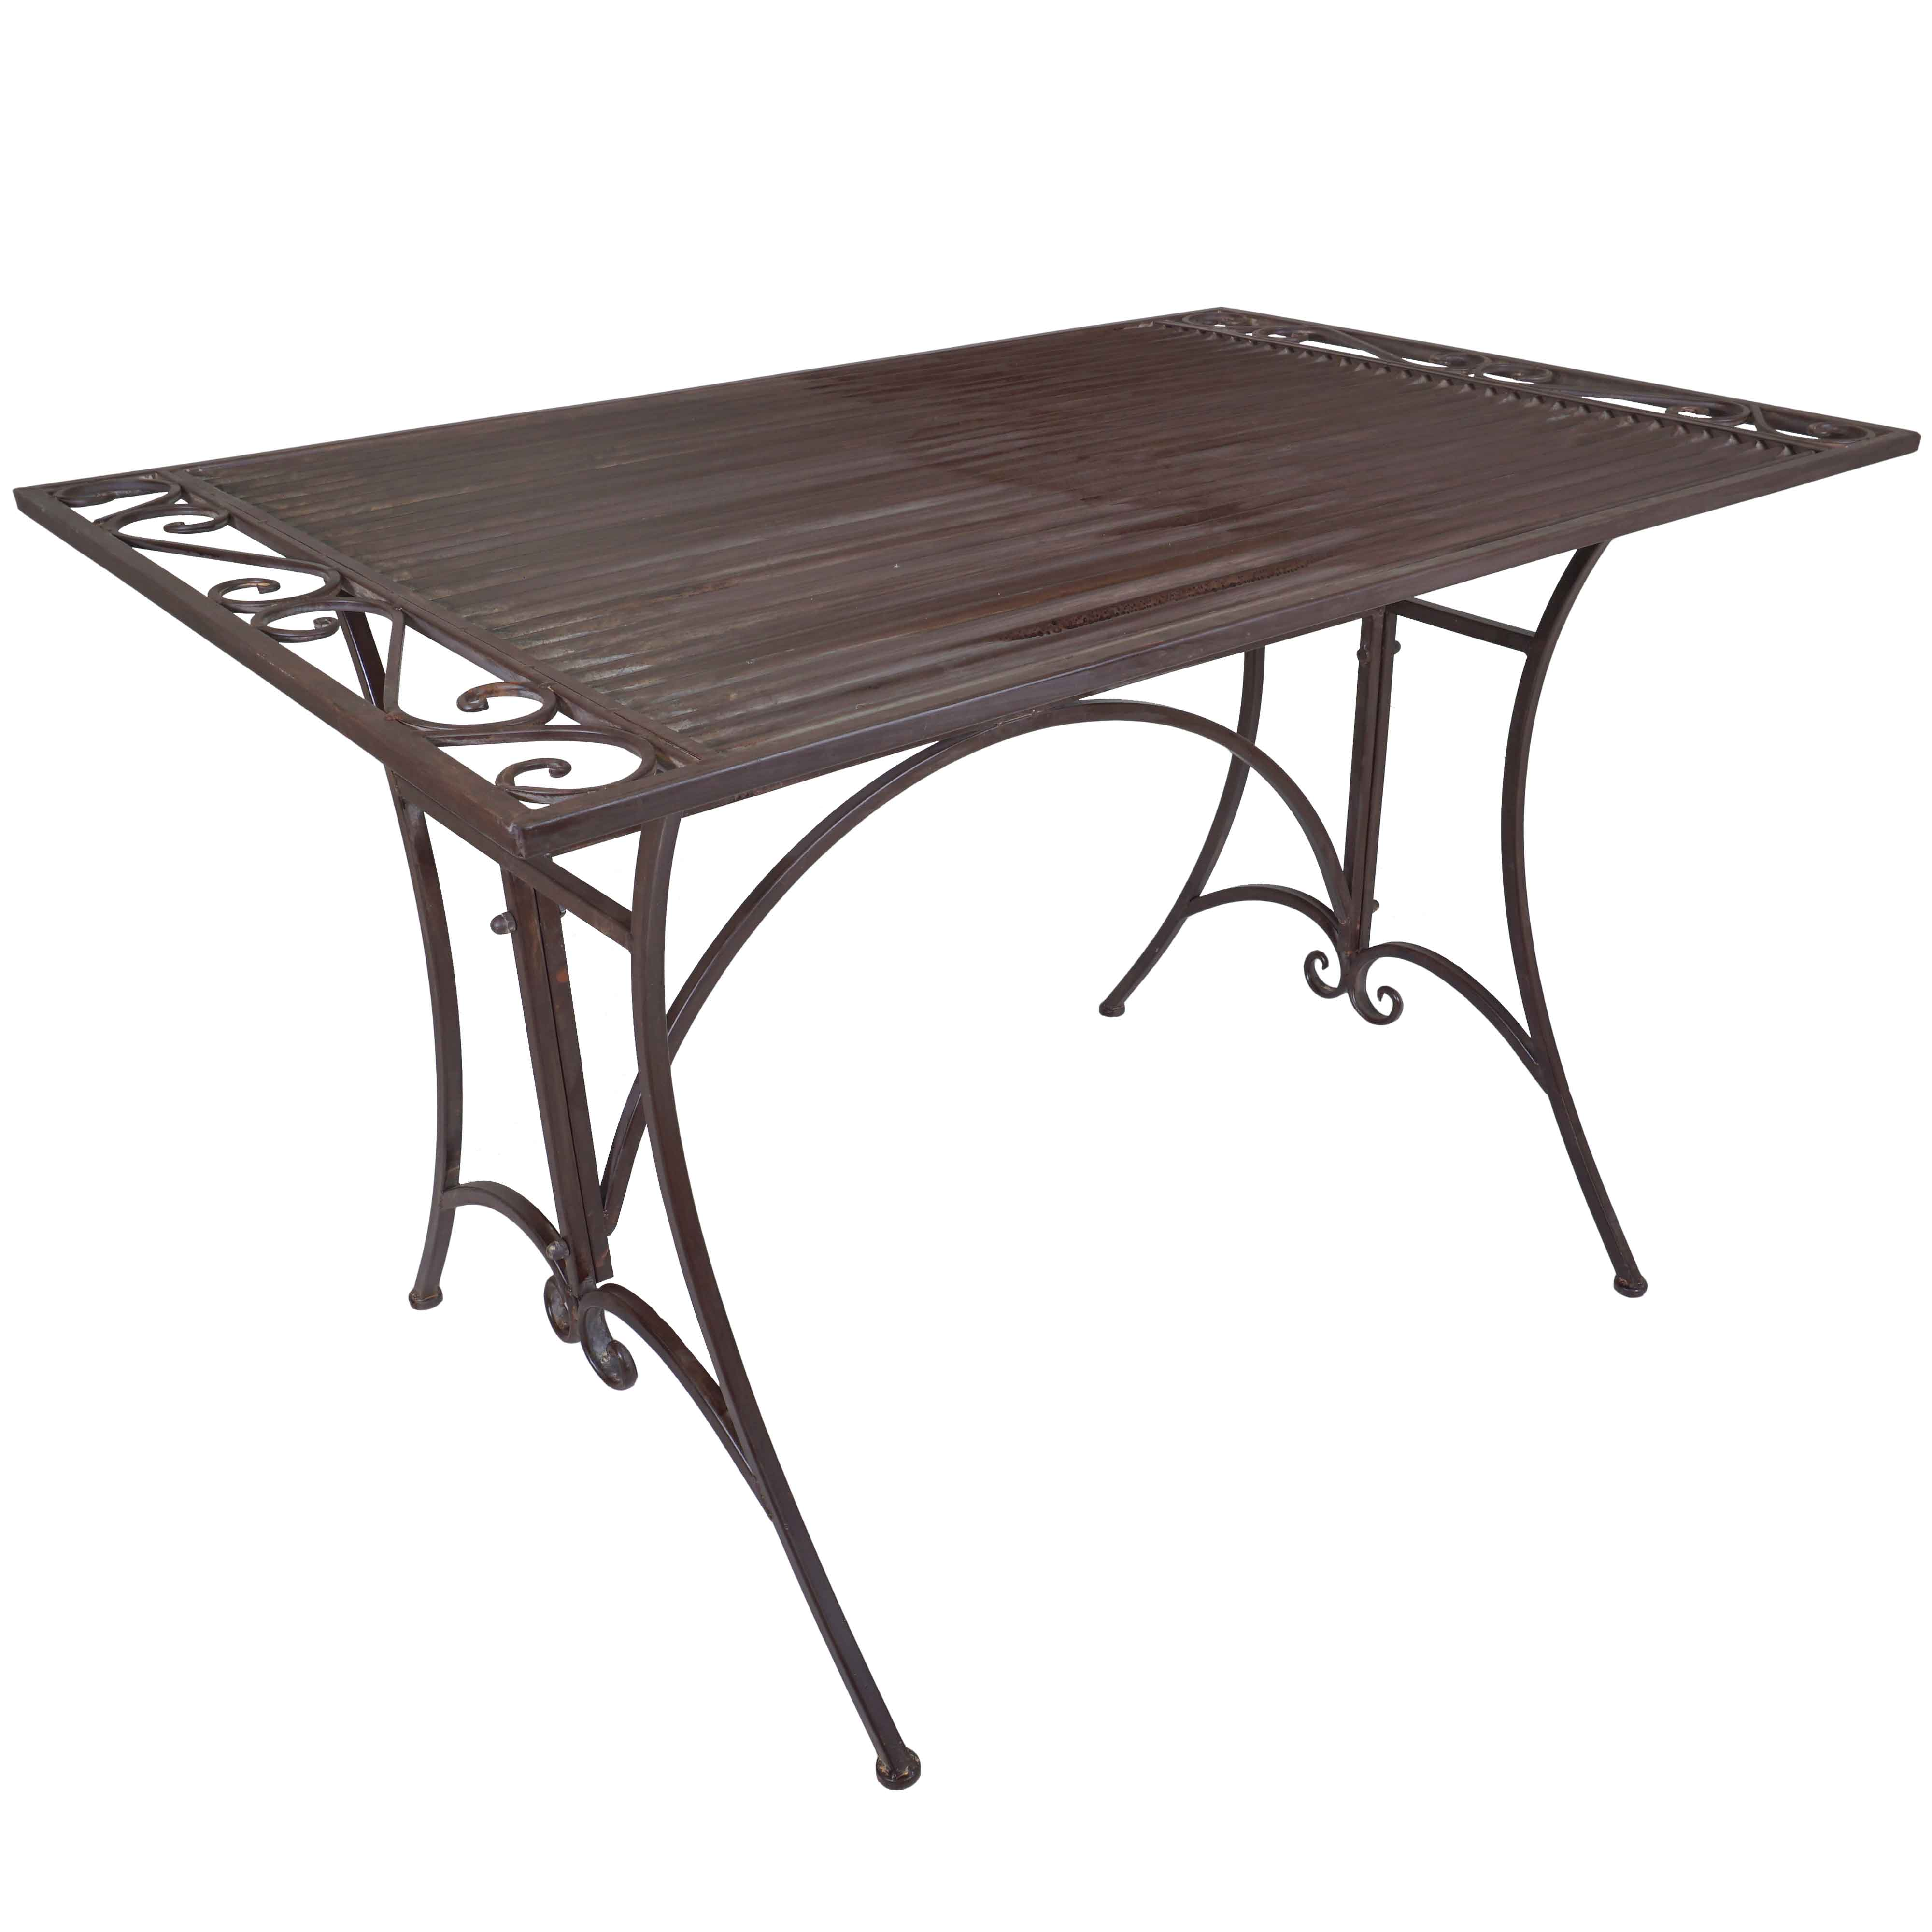 Titan Outdoor Antique Dining Table Porch Patio Garden Deck Rustic